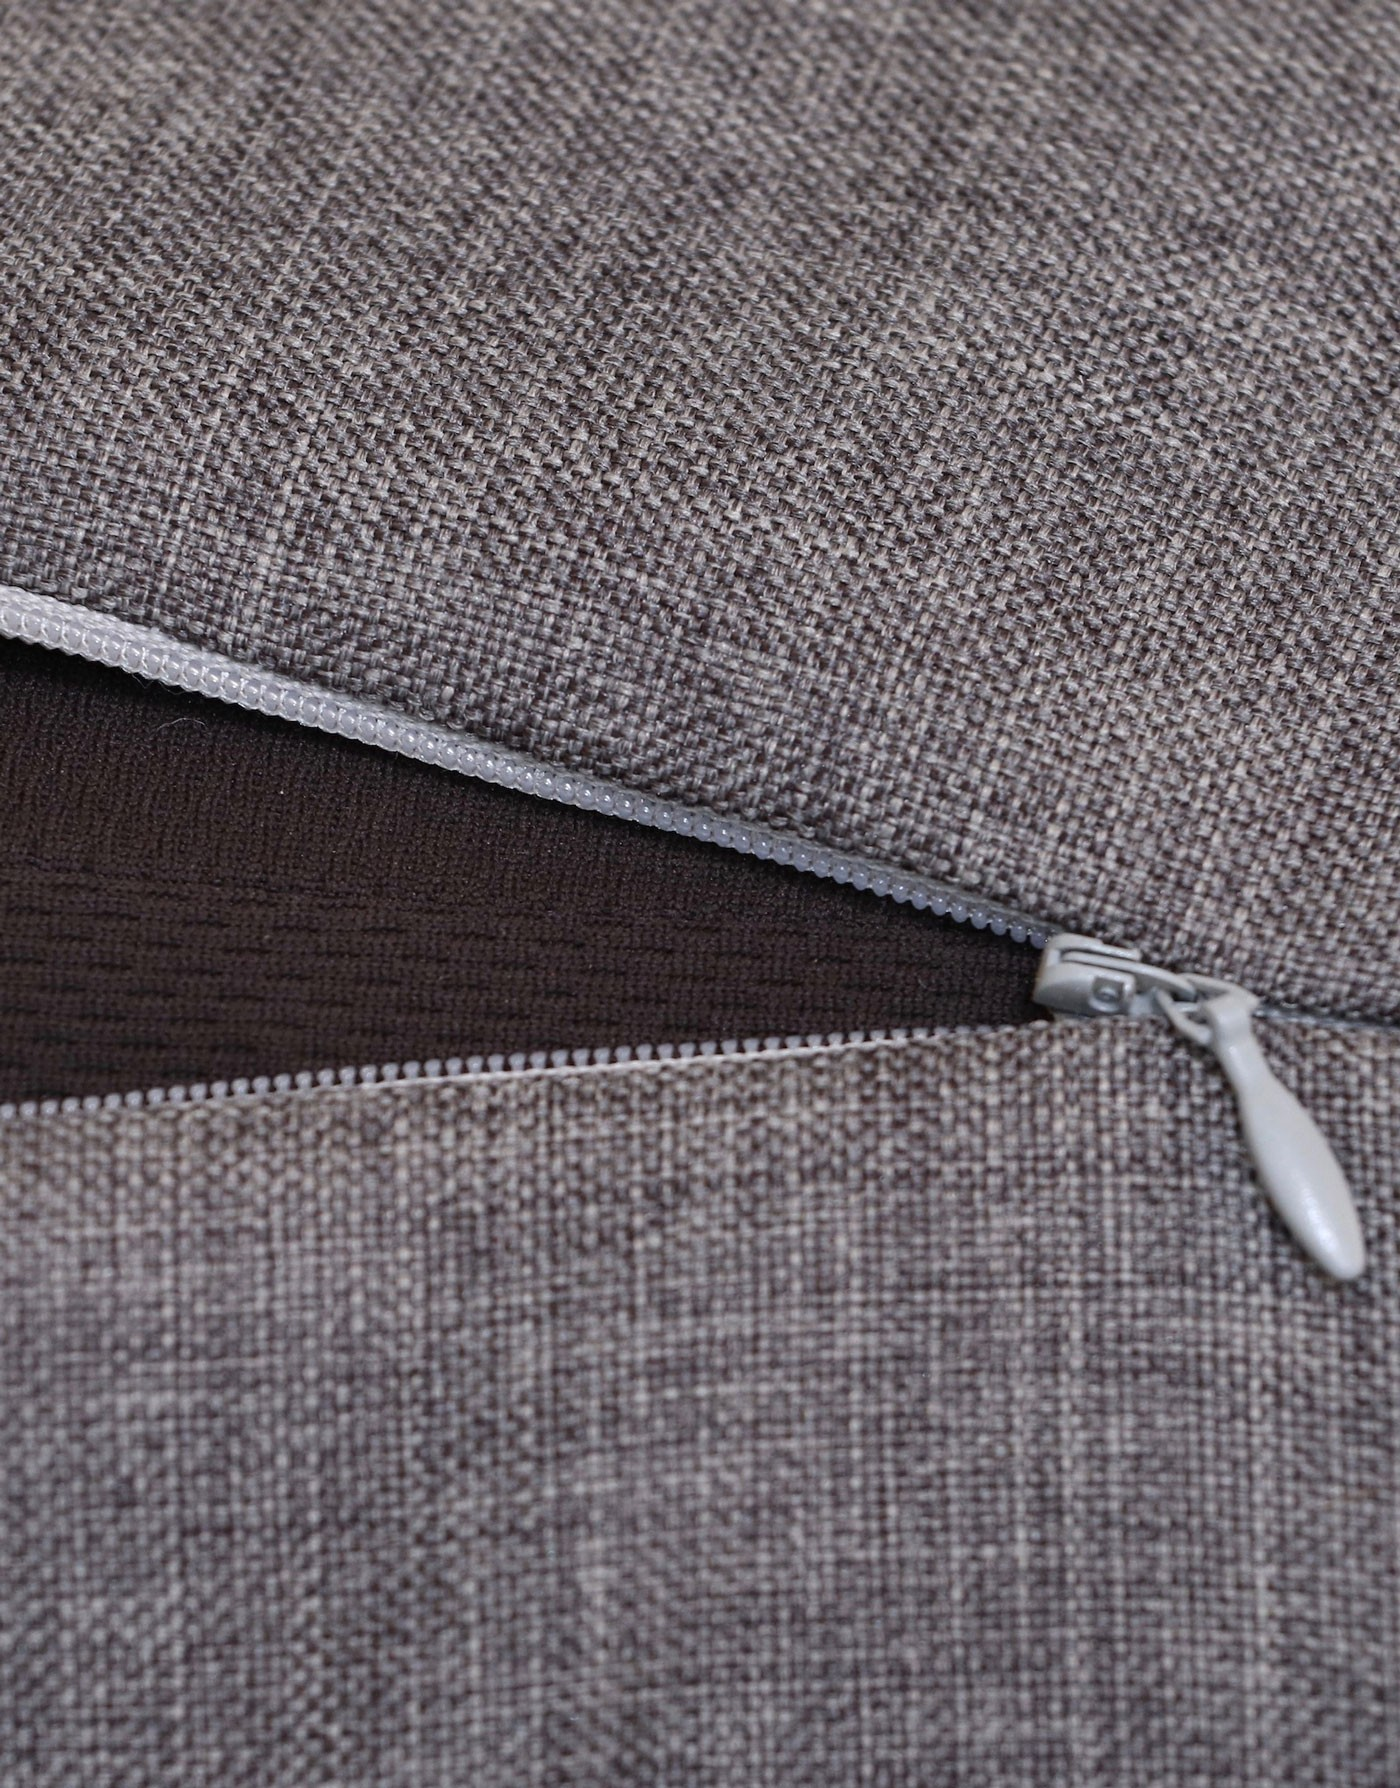 Replacement Outer Cover for Clébard cushion - Linen - Medium Grey